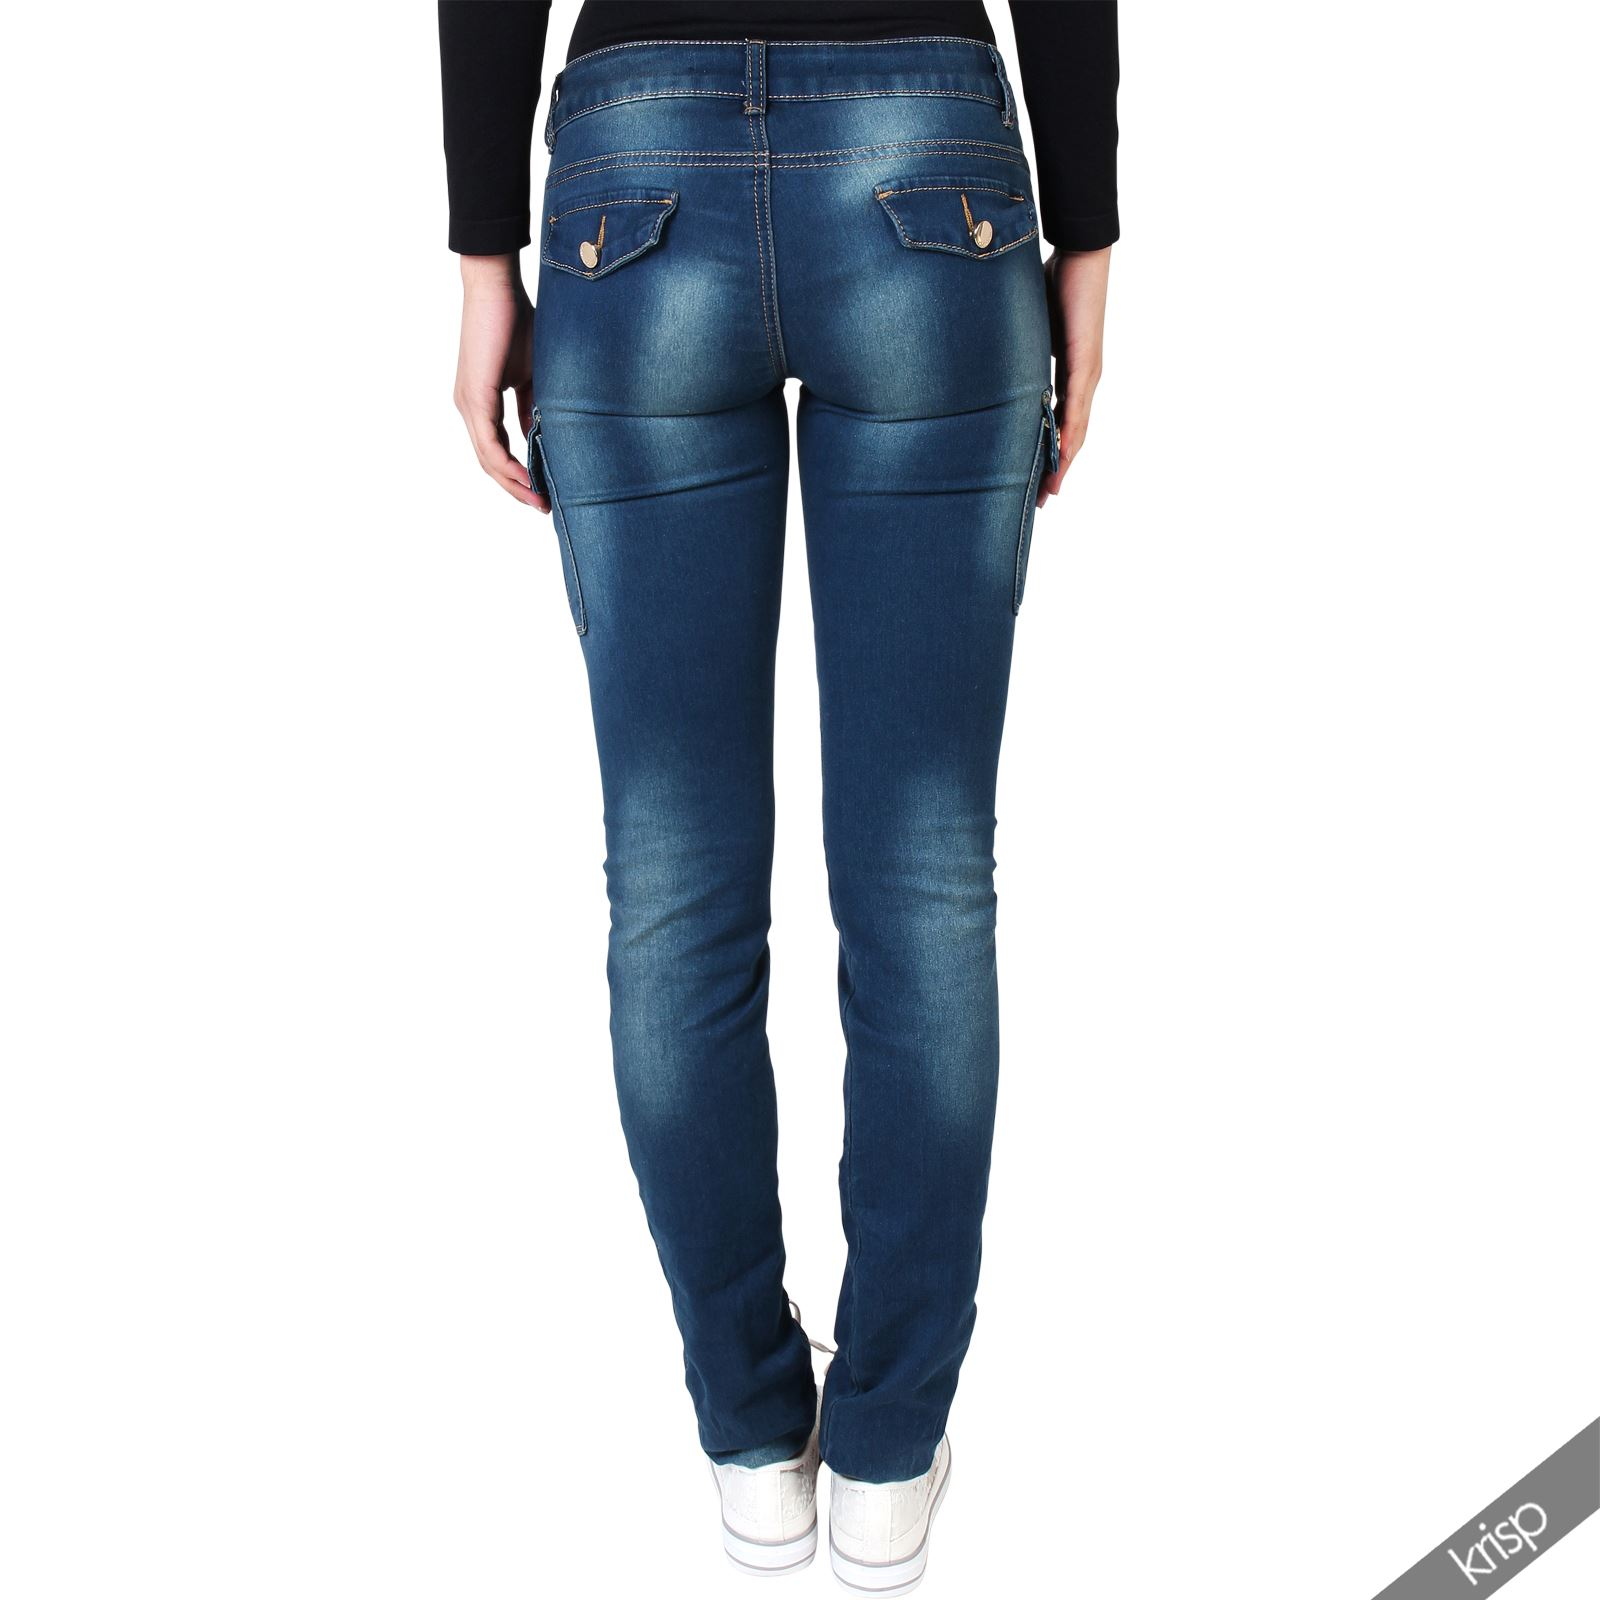 Free shipping and returns on skinny jeans for women at xajk8note.ml Shop for skinny jeans by wash, rise, waist size, and more from brands like Articles of Society, Topshop, AG, Madewell, and more. Free shipping and returns.